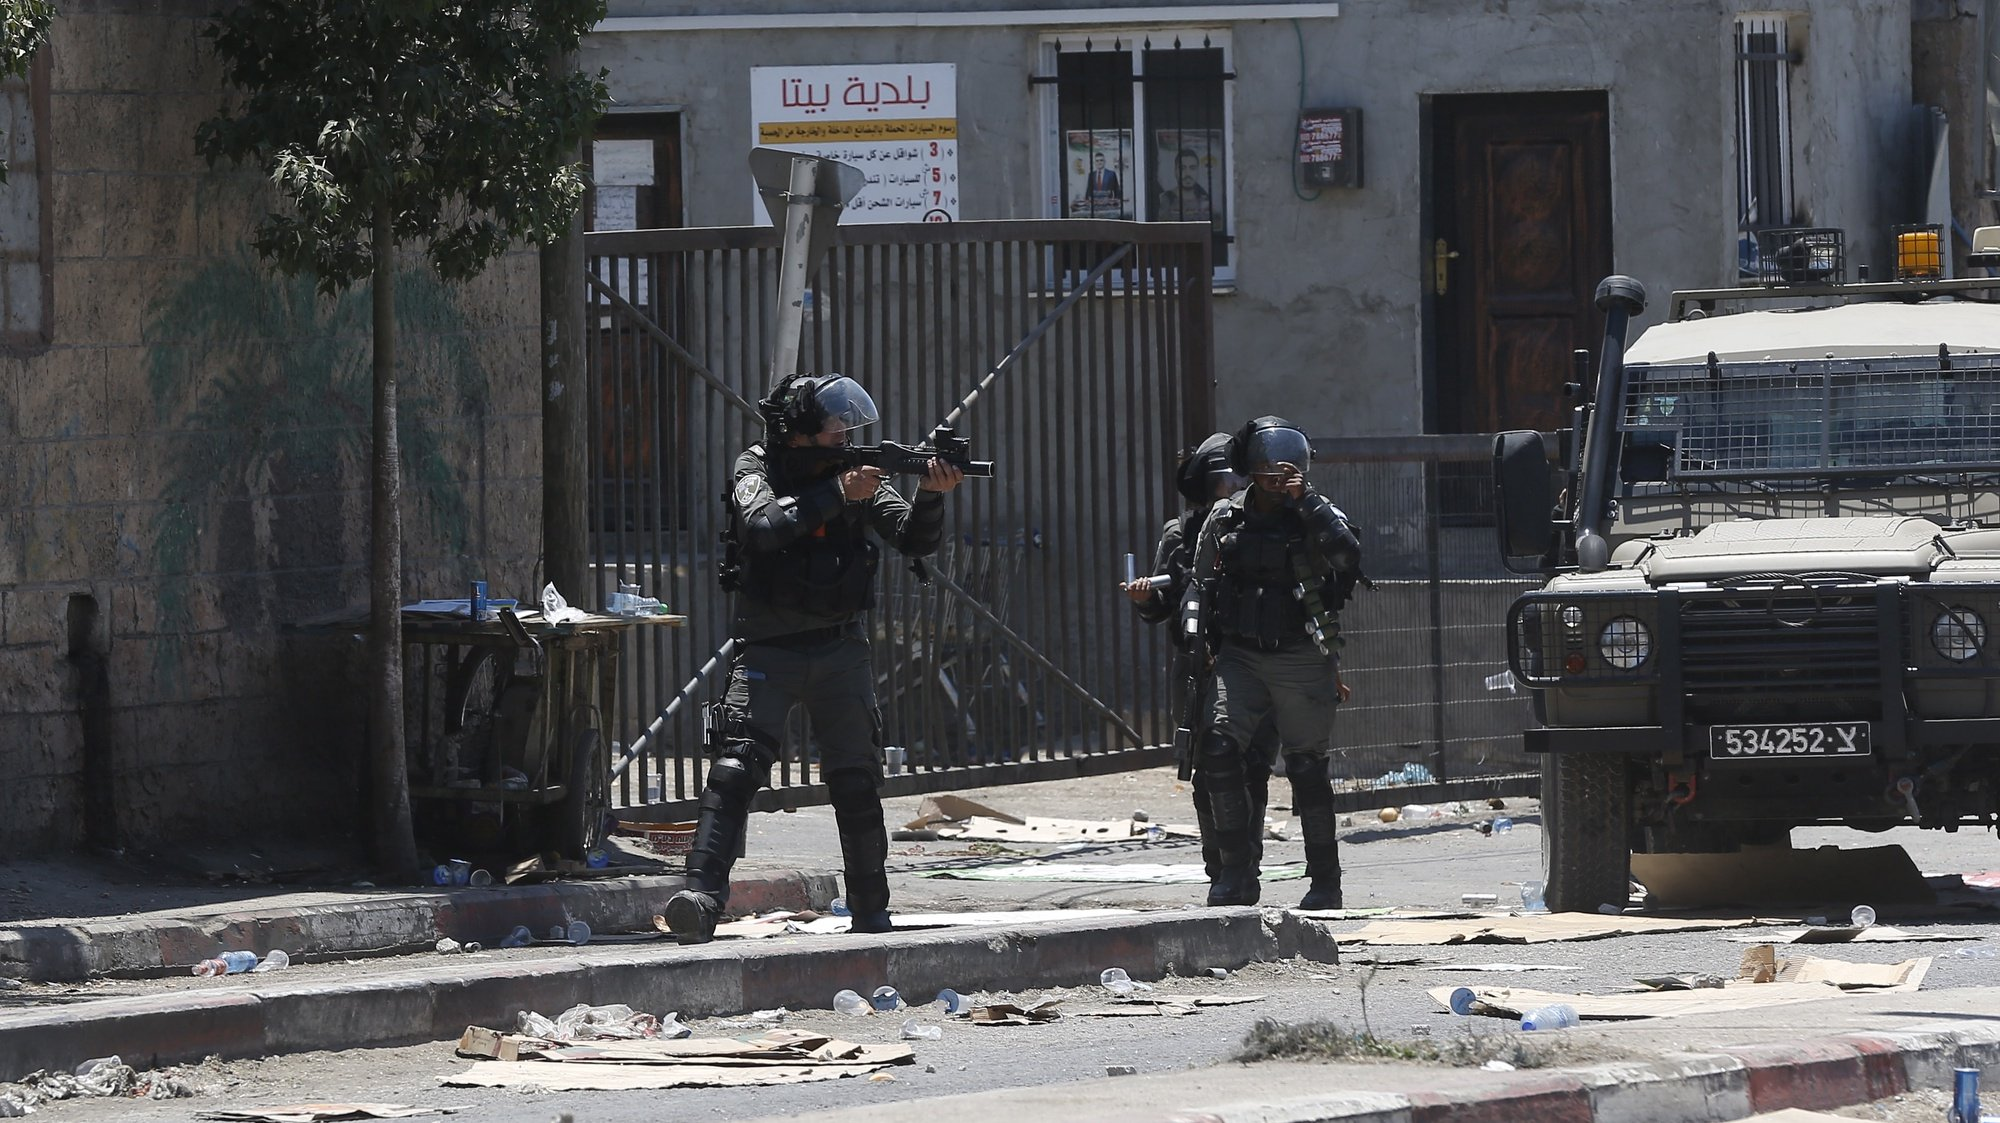 epa09282952 Israeli soldiers take position during clashes with Palestinian protesters after a protest against Israeli settlements at Beta village near the West Bank City of Nablus, 18 June 2021. According to Medical sources, 57 Palestinians were wounded during the clashes.  EPA/ALAA BADARNEH